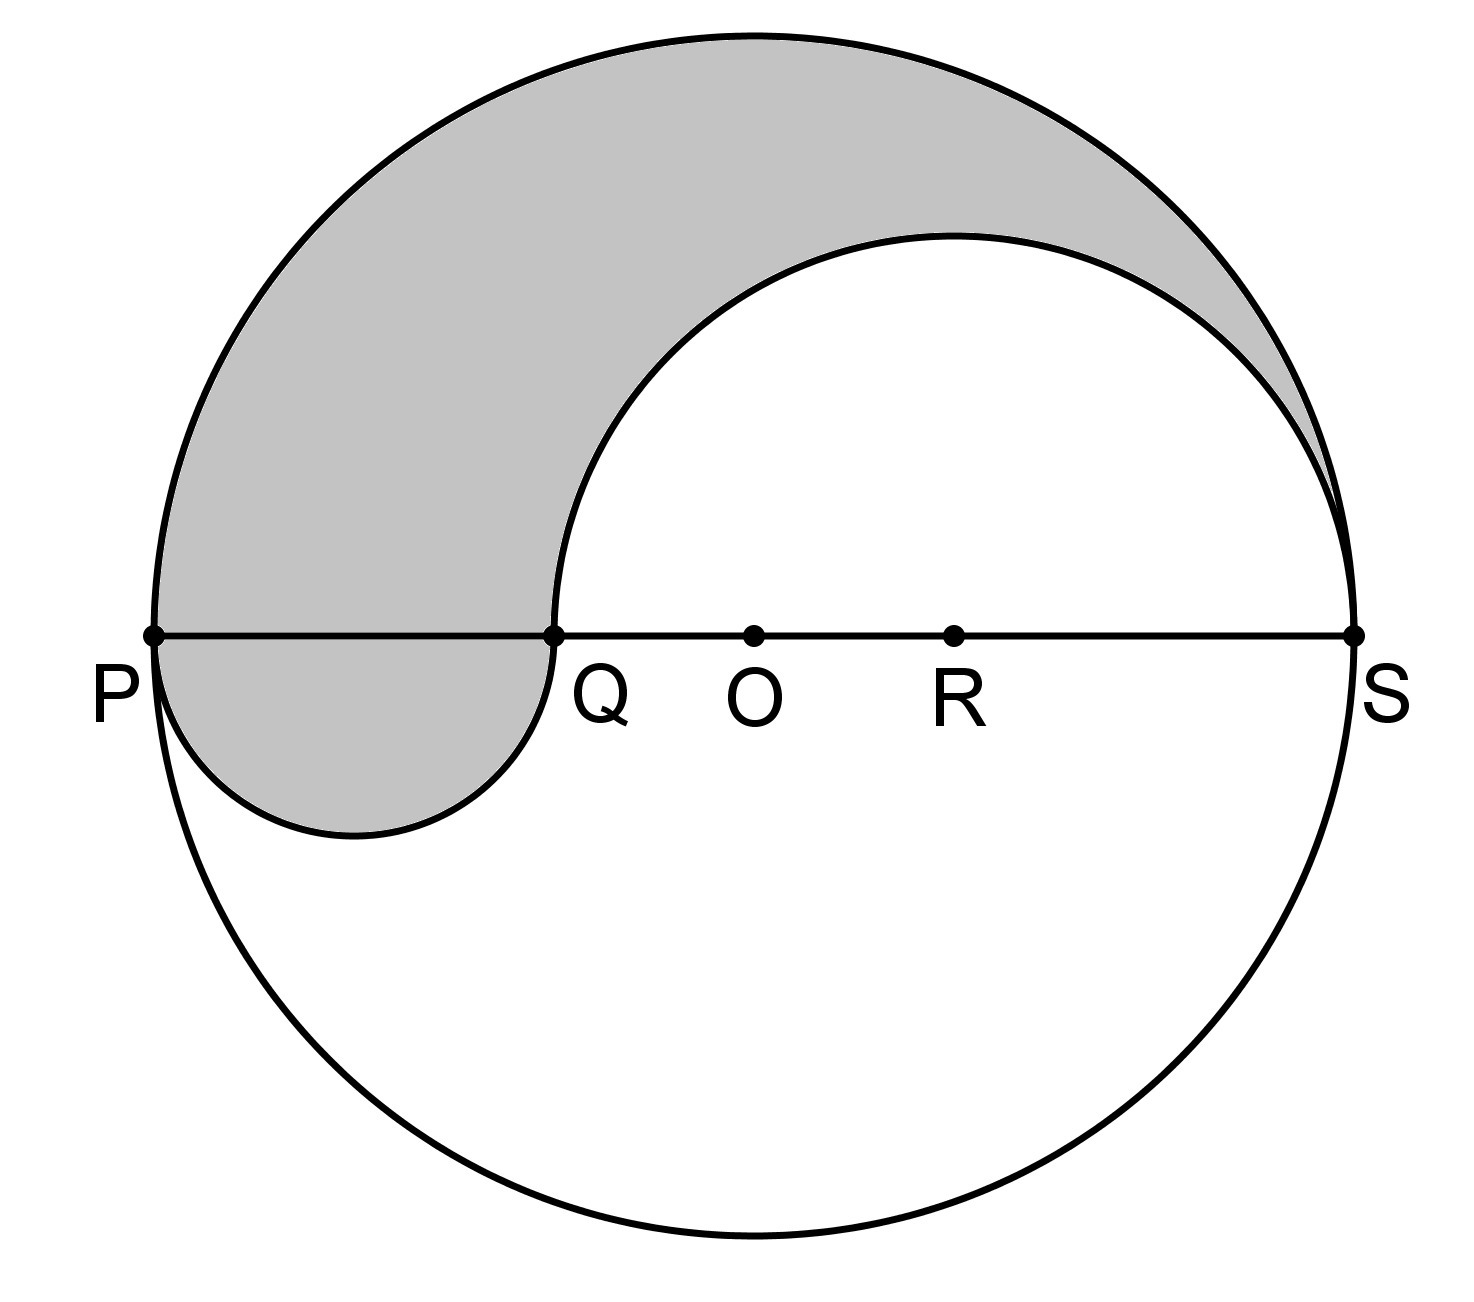 Pqrs Is A Diameter Of A Circle Of Radius 6cm The Lengths